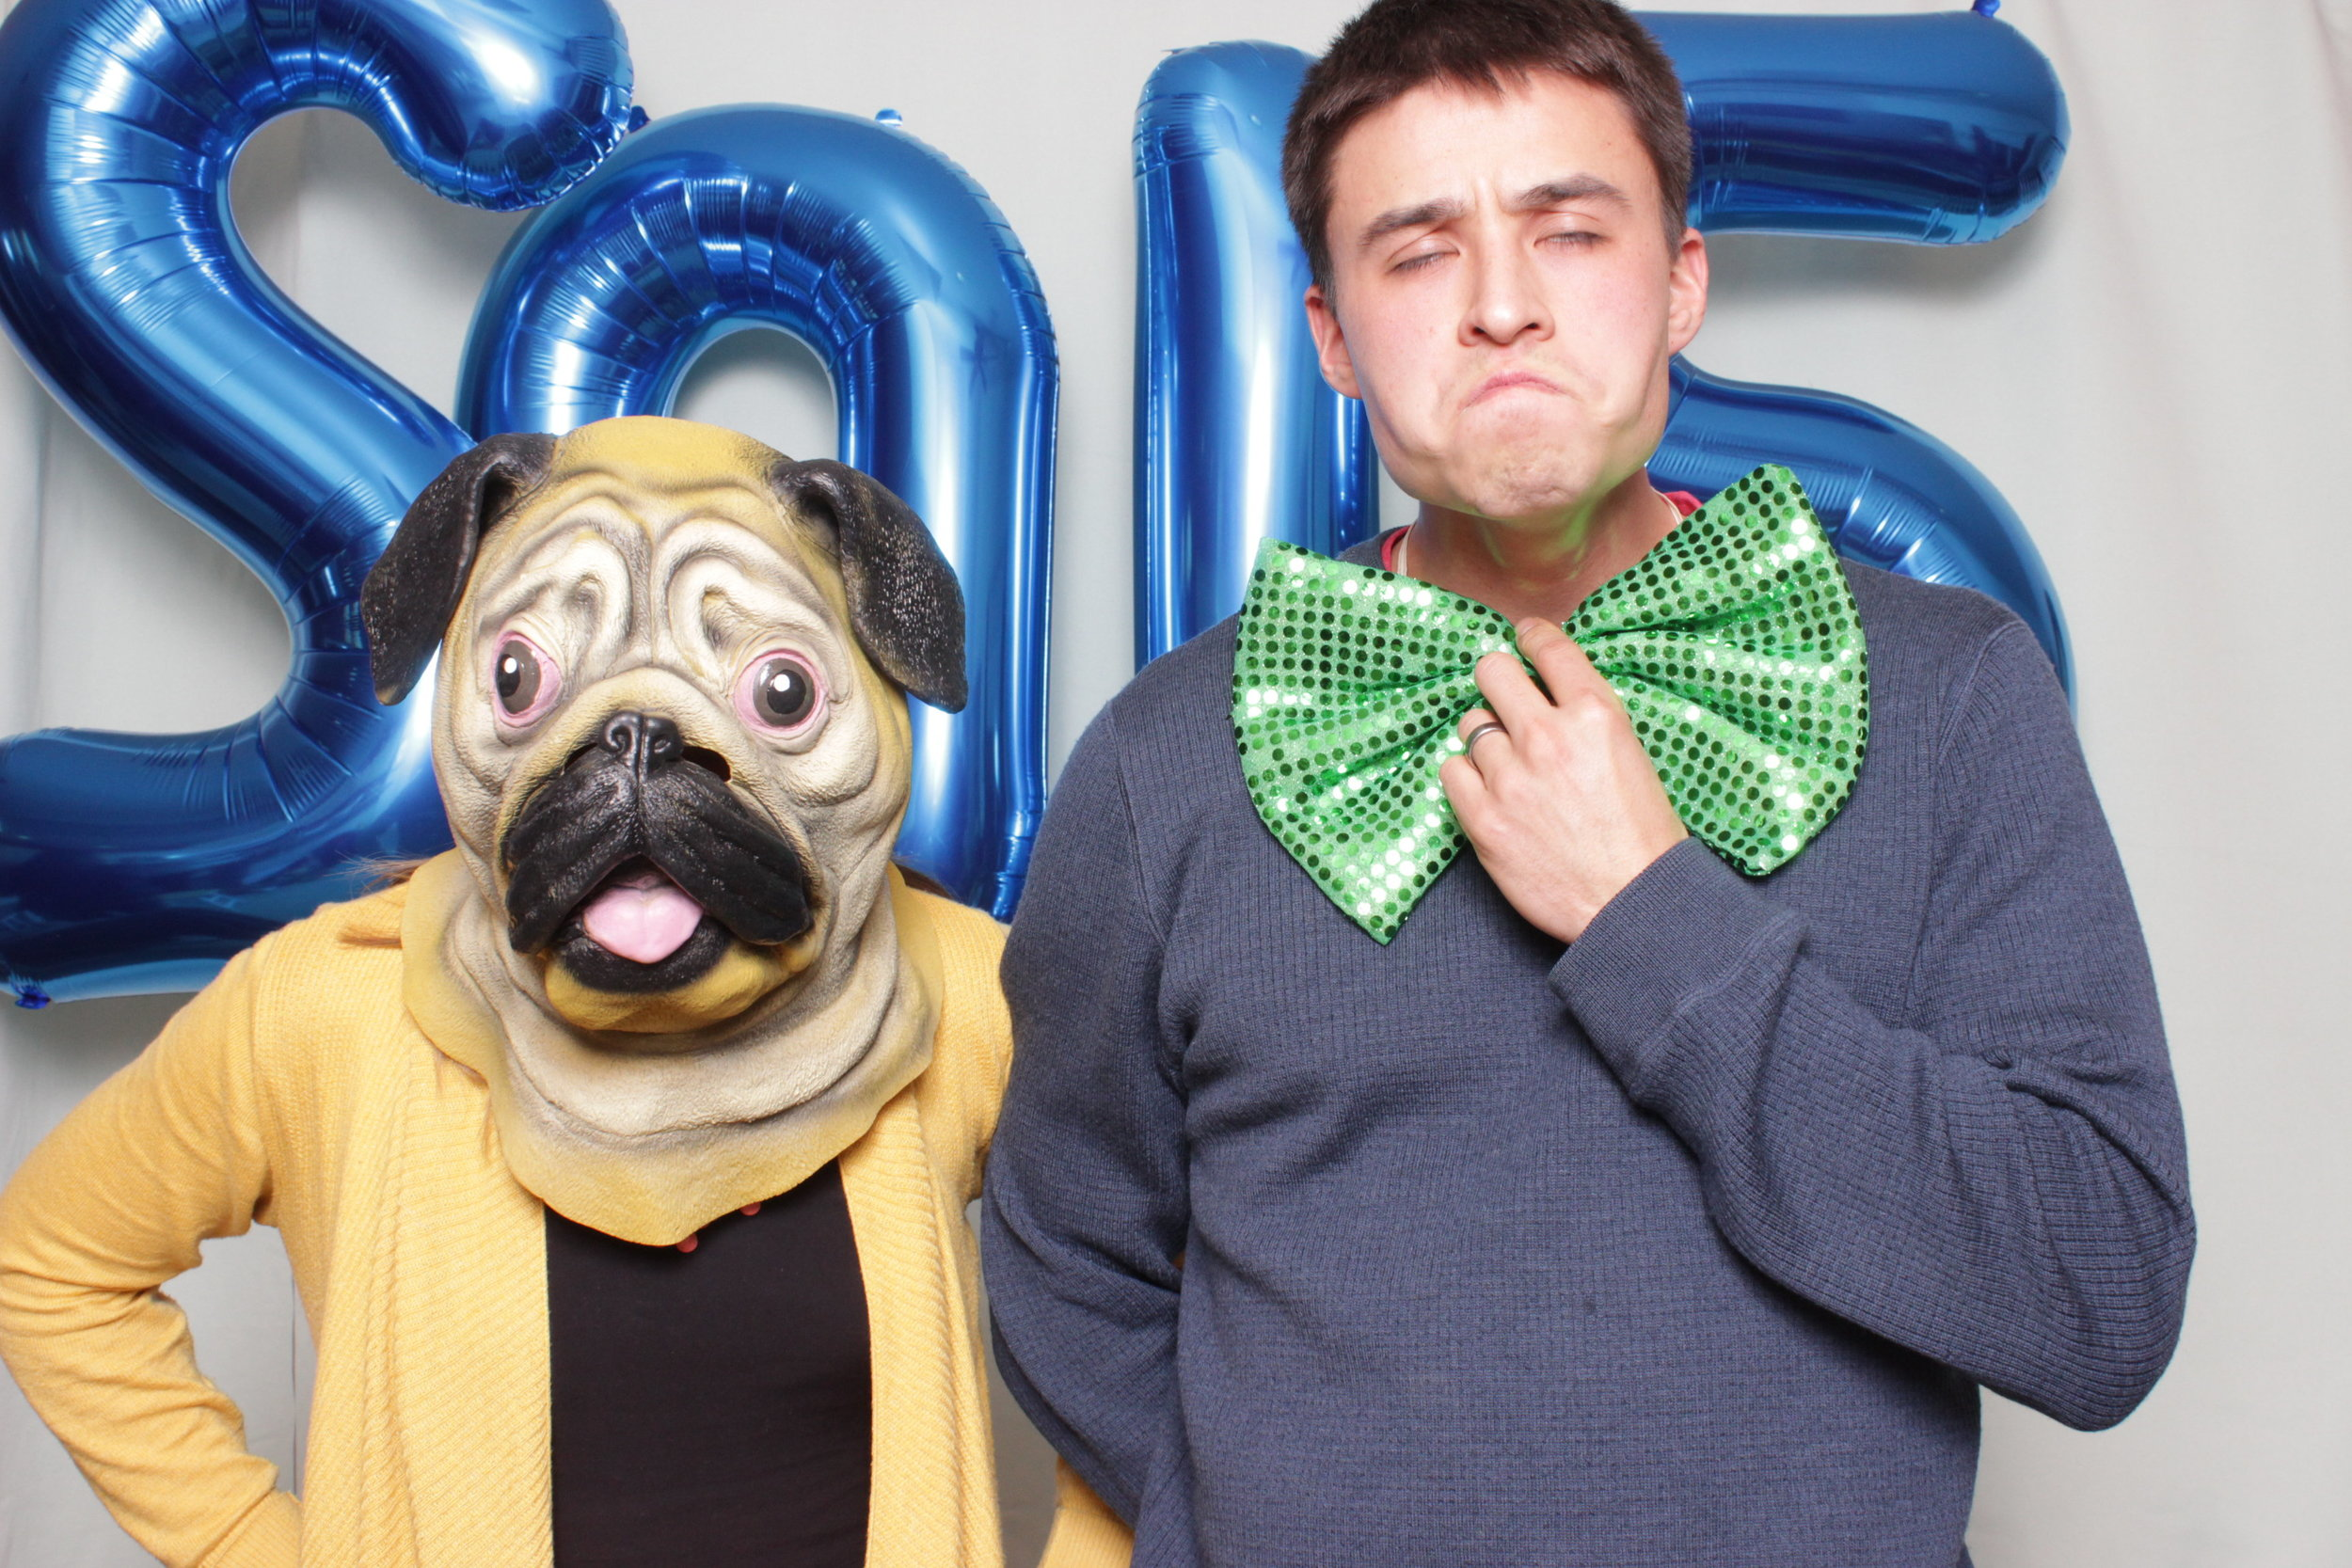 photo-booth-rental-in-chico-california-new-years-party-pug-mask-green-bow-tie